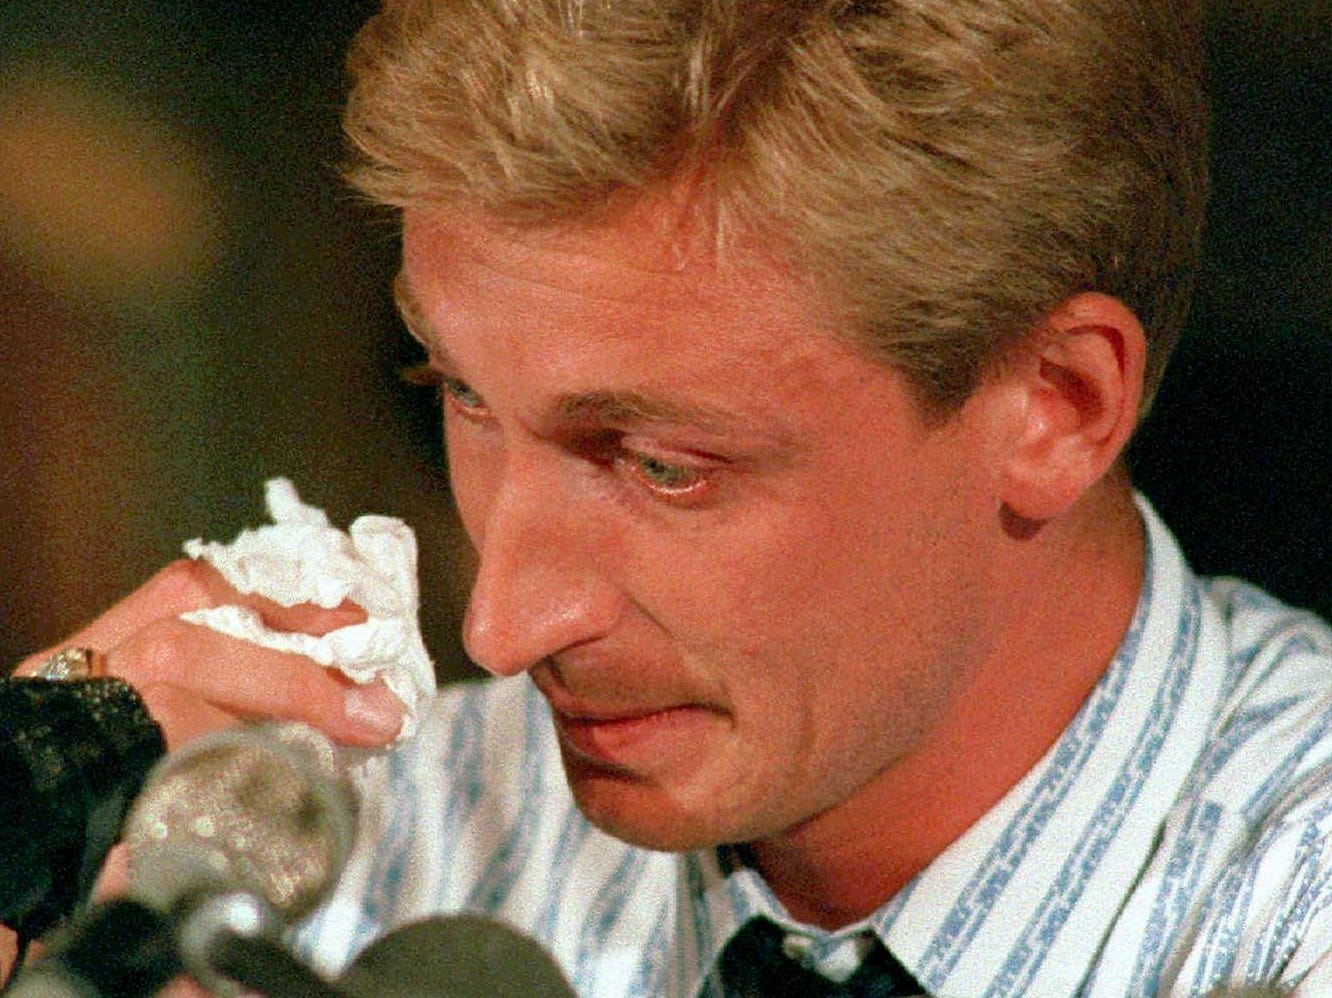 Gretzky fought back tears in his farewell news conference in Edmonton.